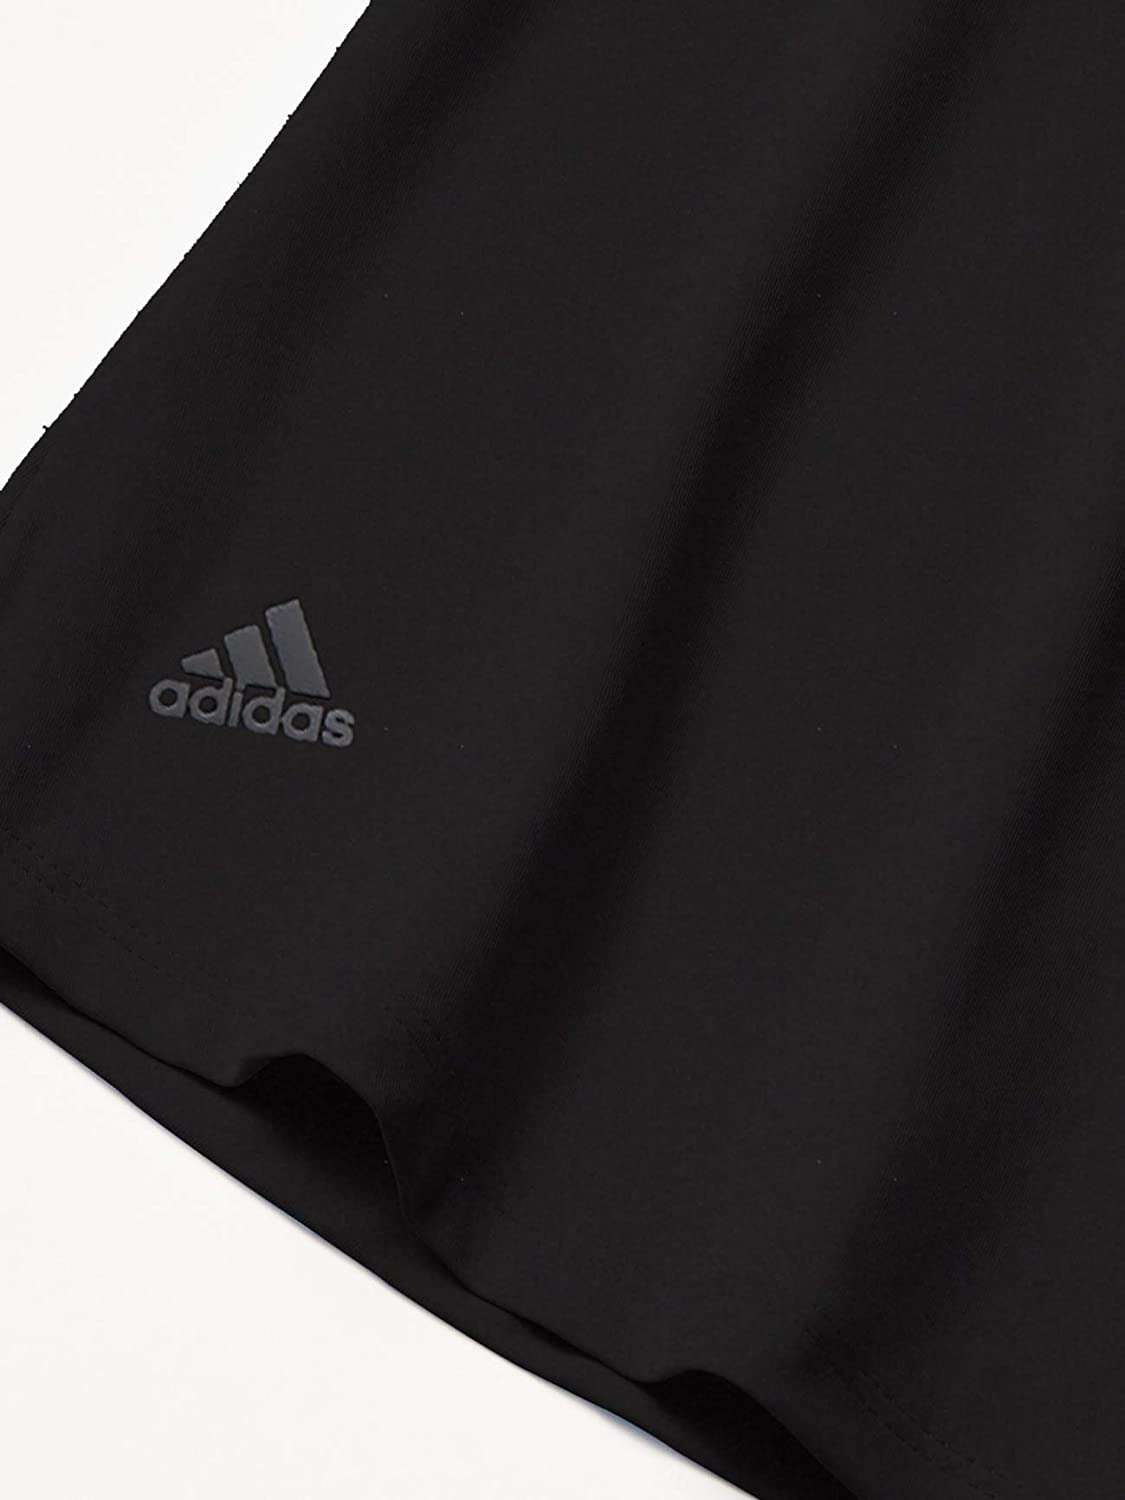 adidas Ultimate365 Short Sleeve Polo, Donna Nero